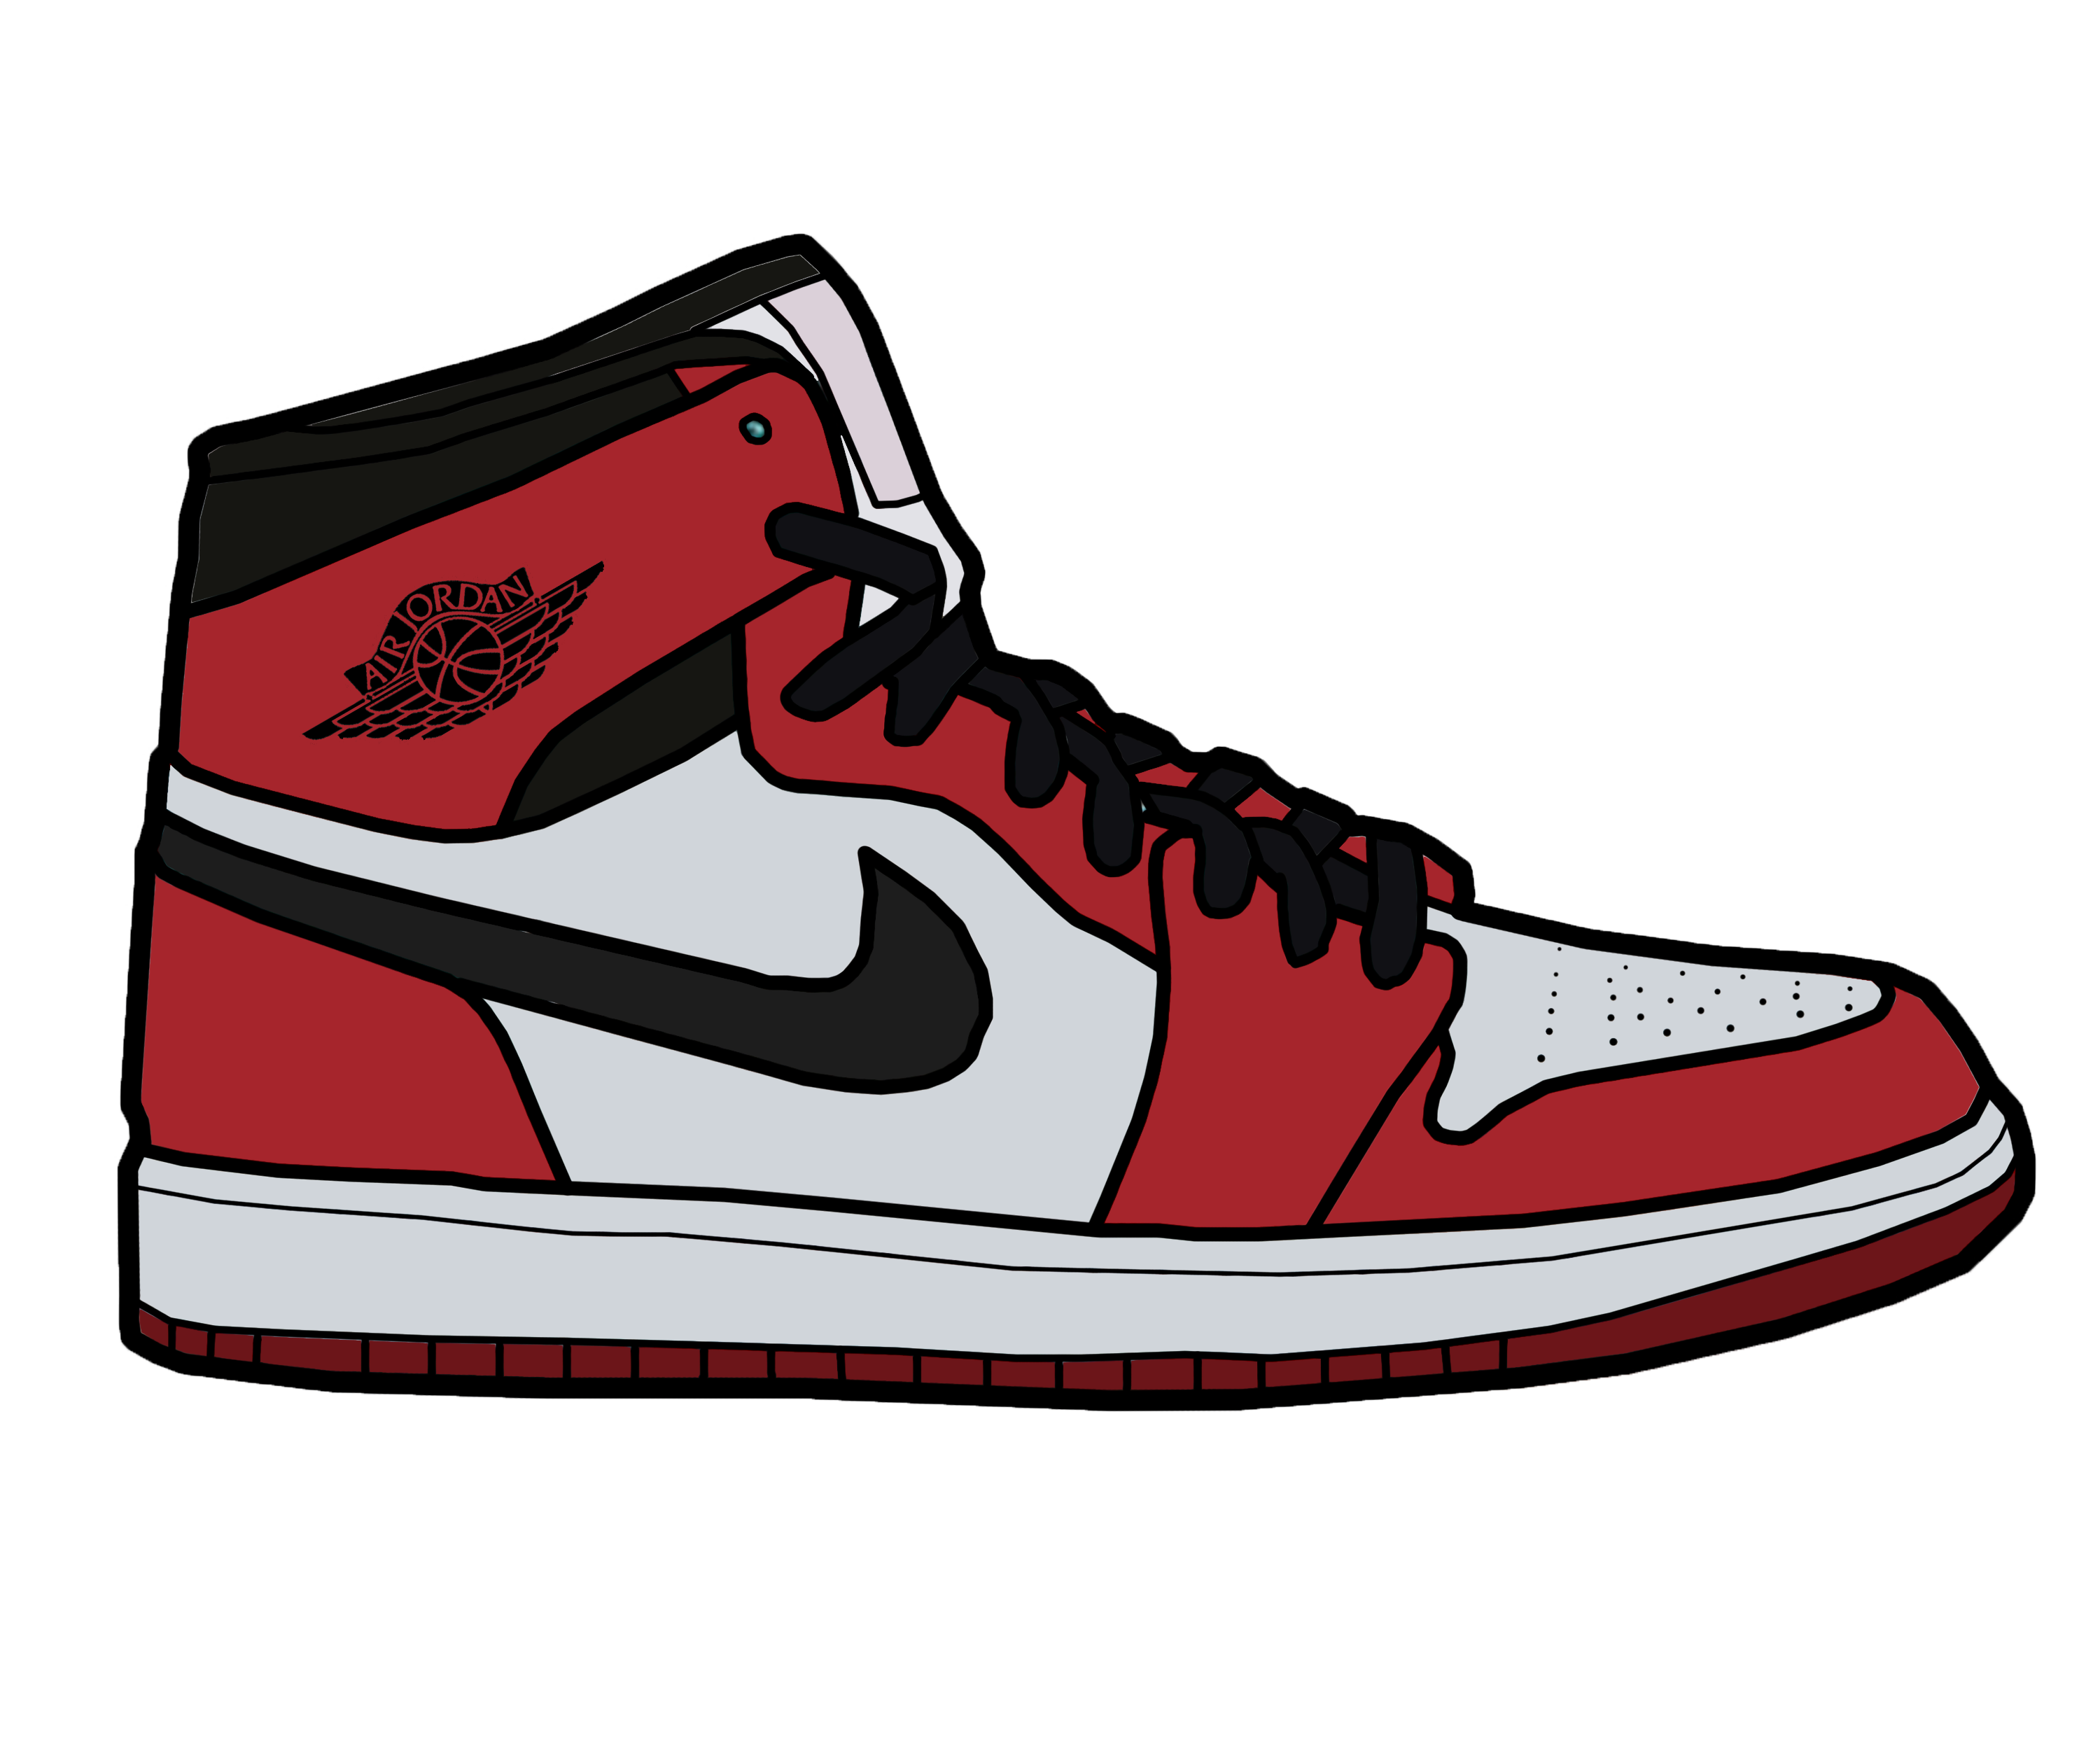 jordan and nike shoes drawing cartoon faces 859260